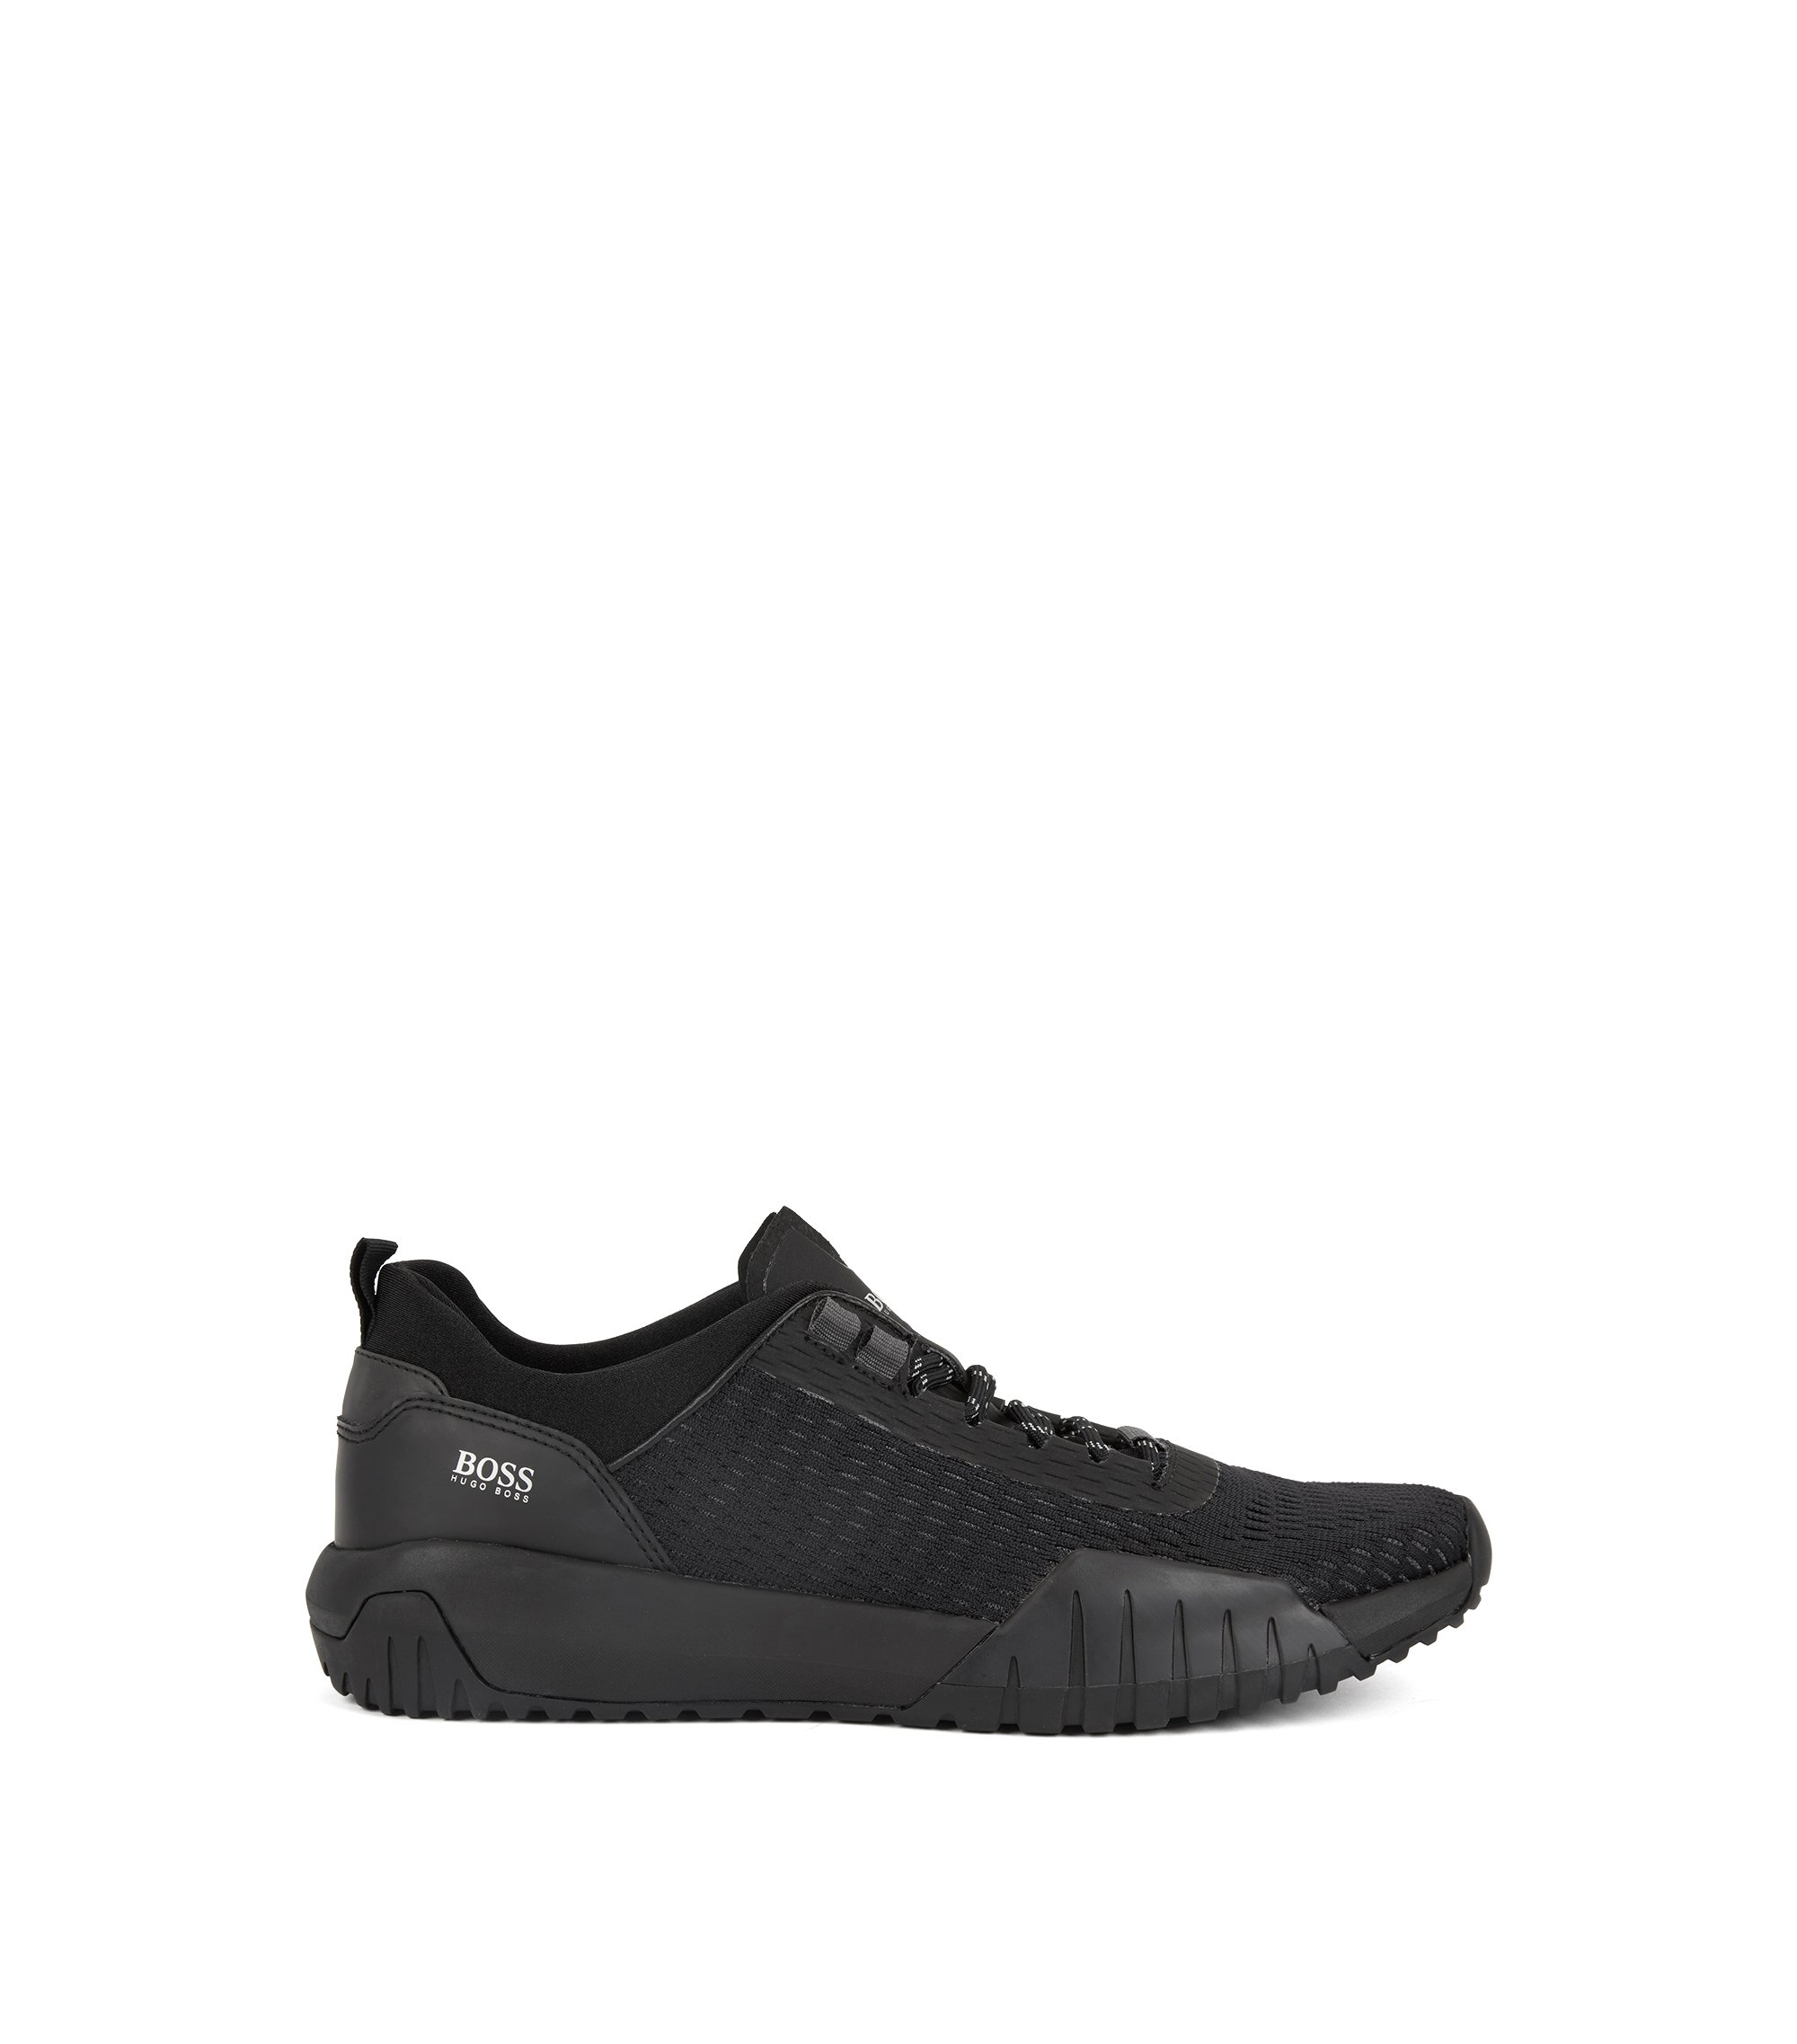 Running-inspired trainers with Strobel construction and reflective laces, Black